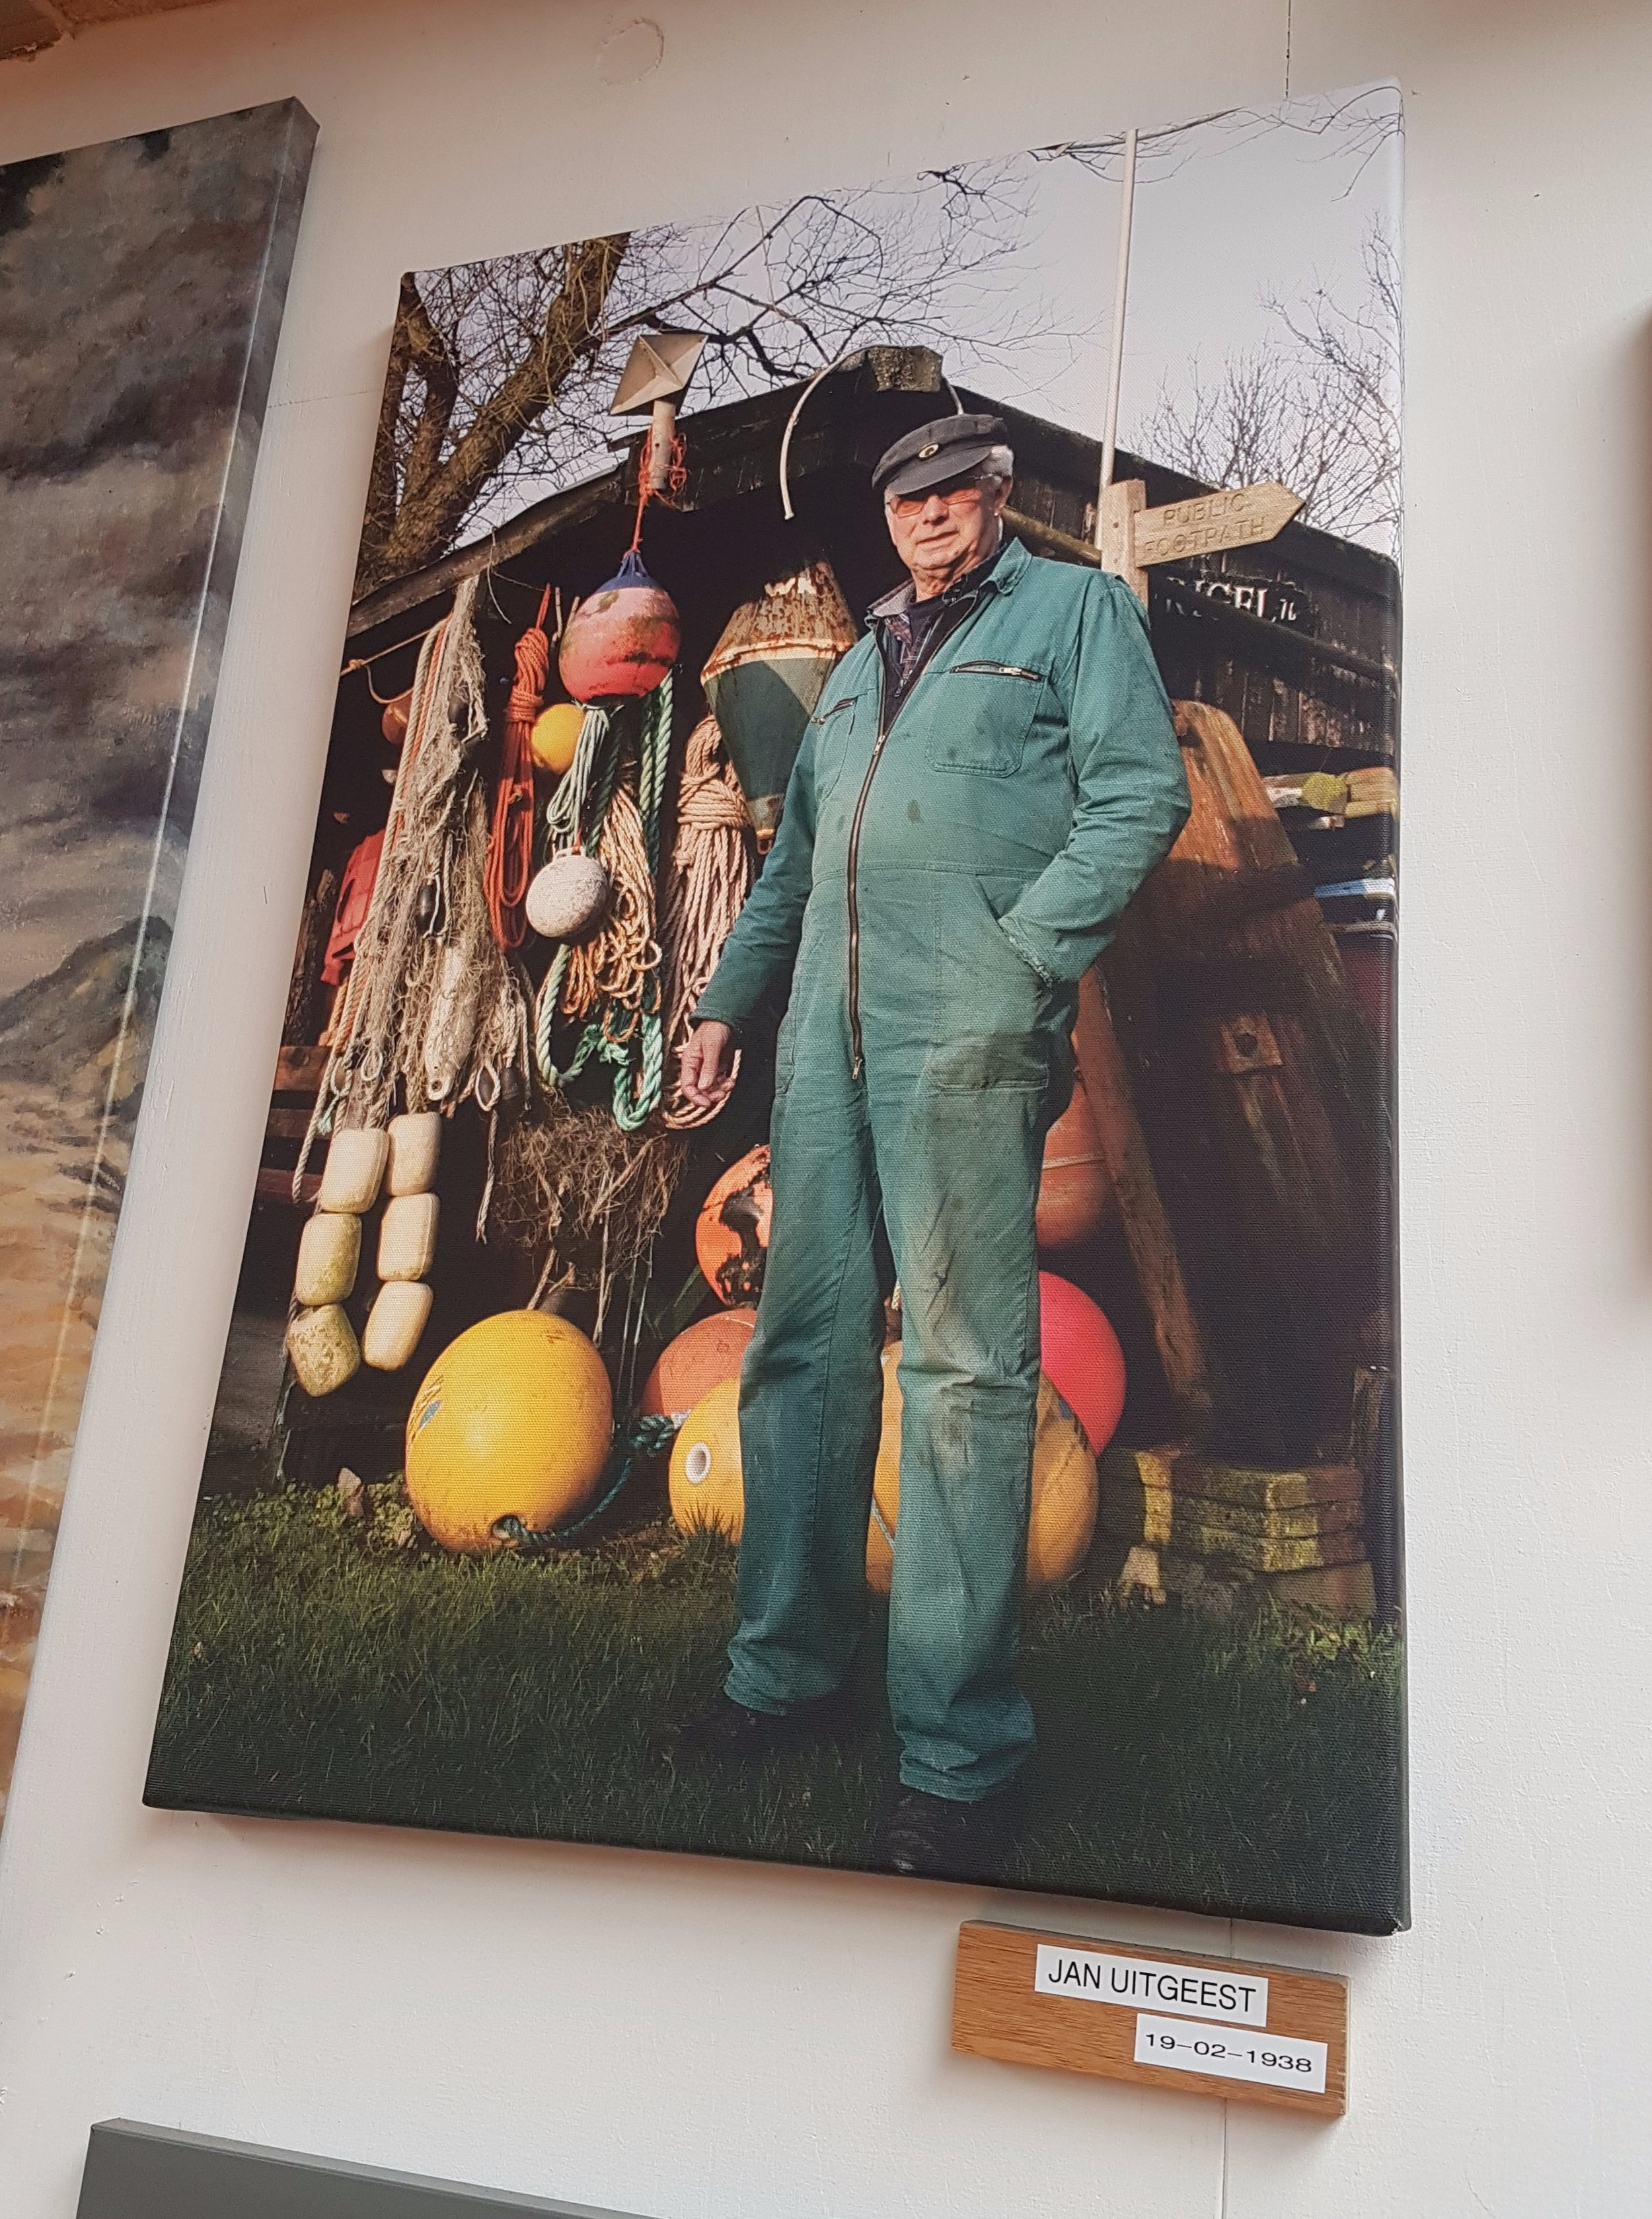 Photo of  Jan Uitgeest  found hanging proudly on the wall, of the museum.